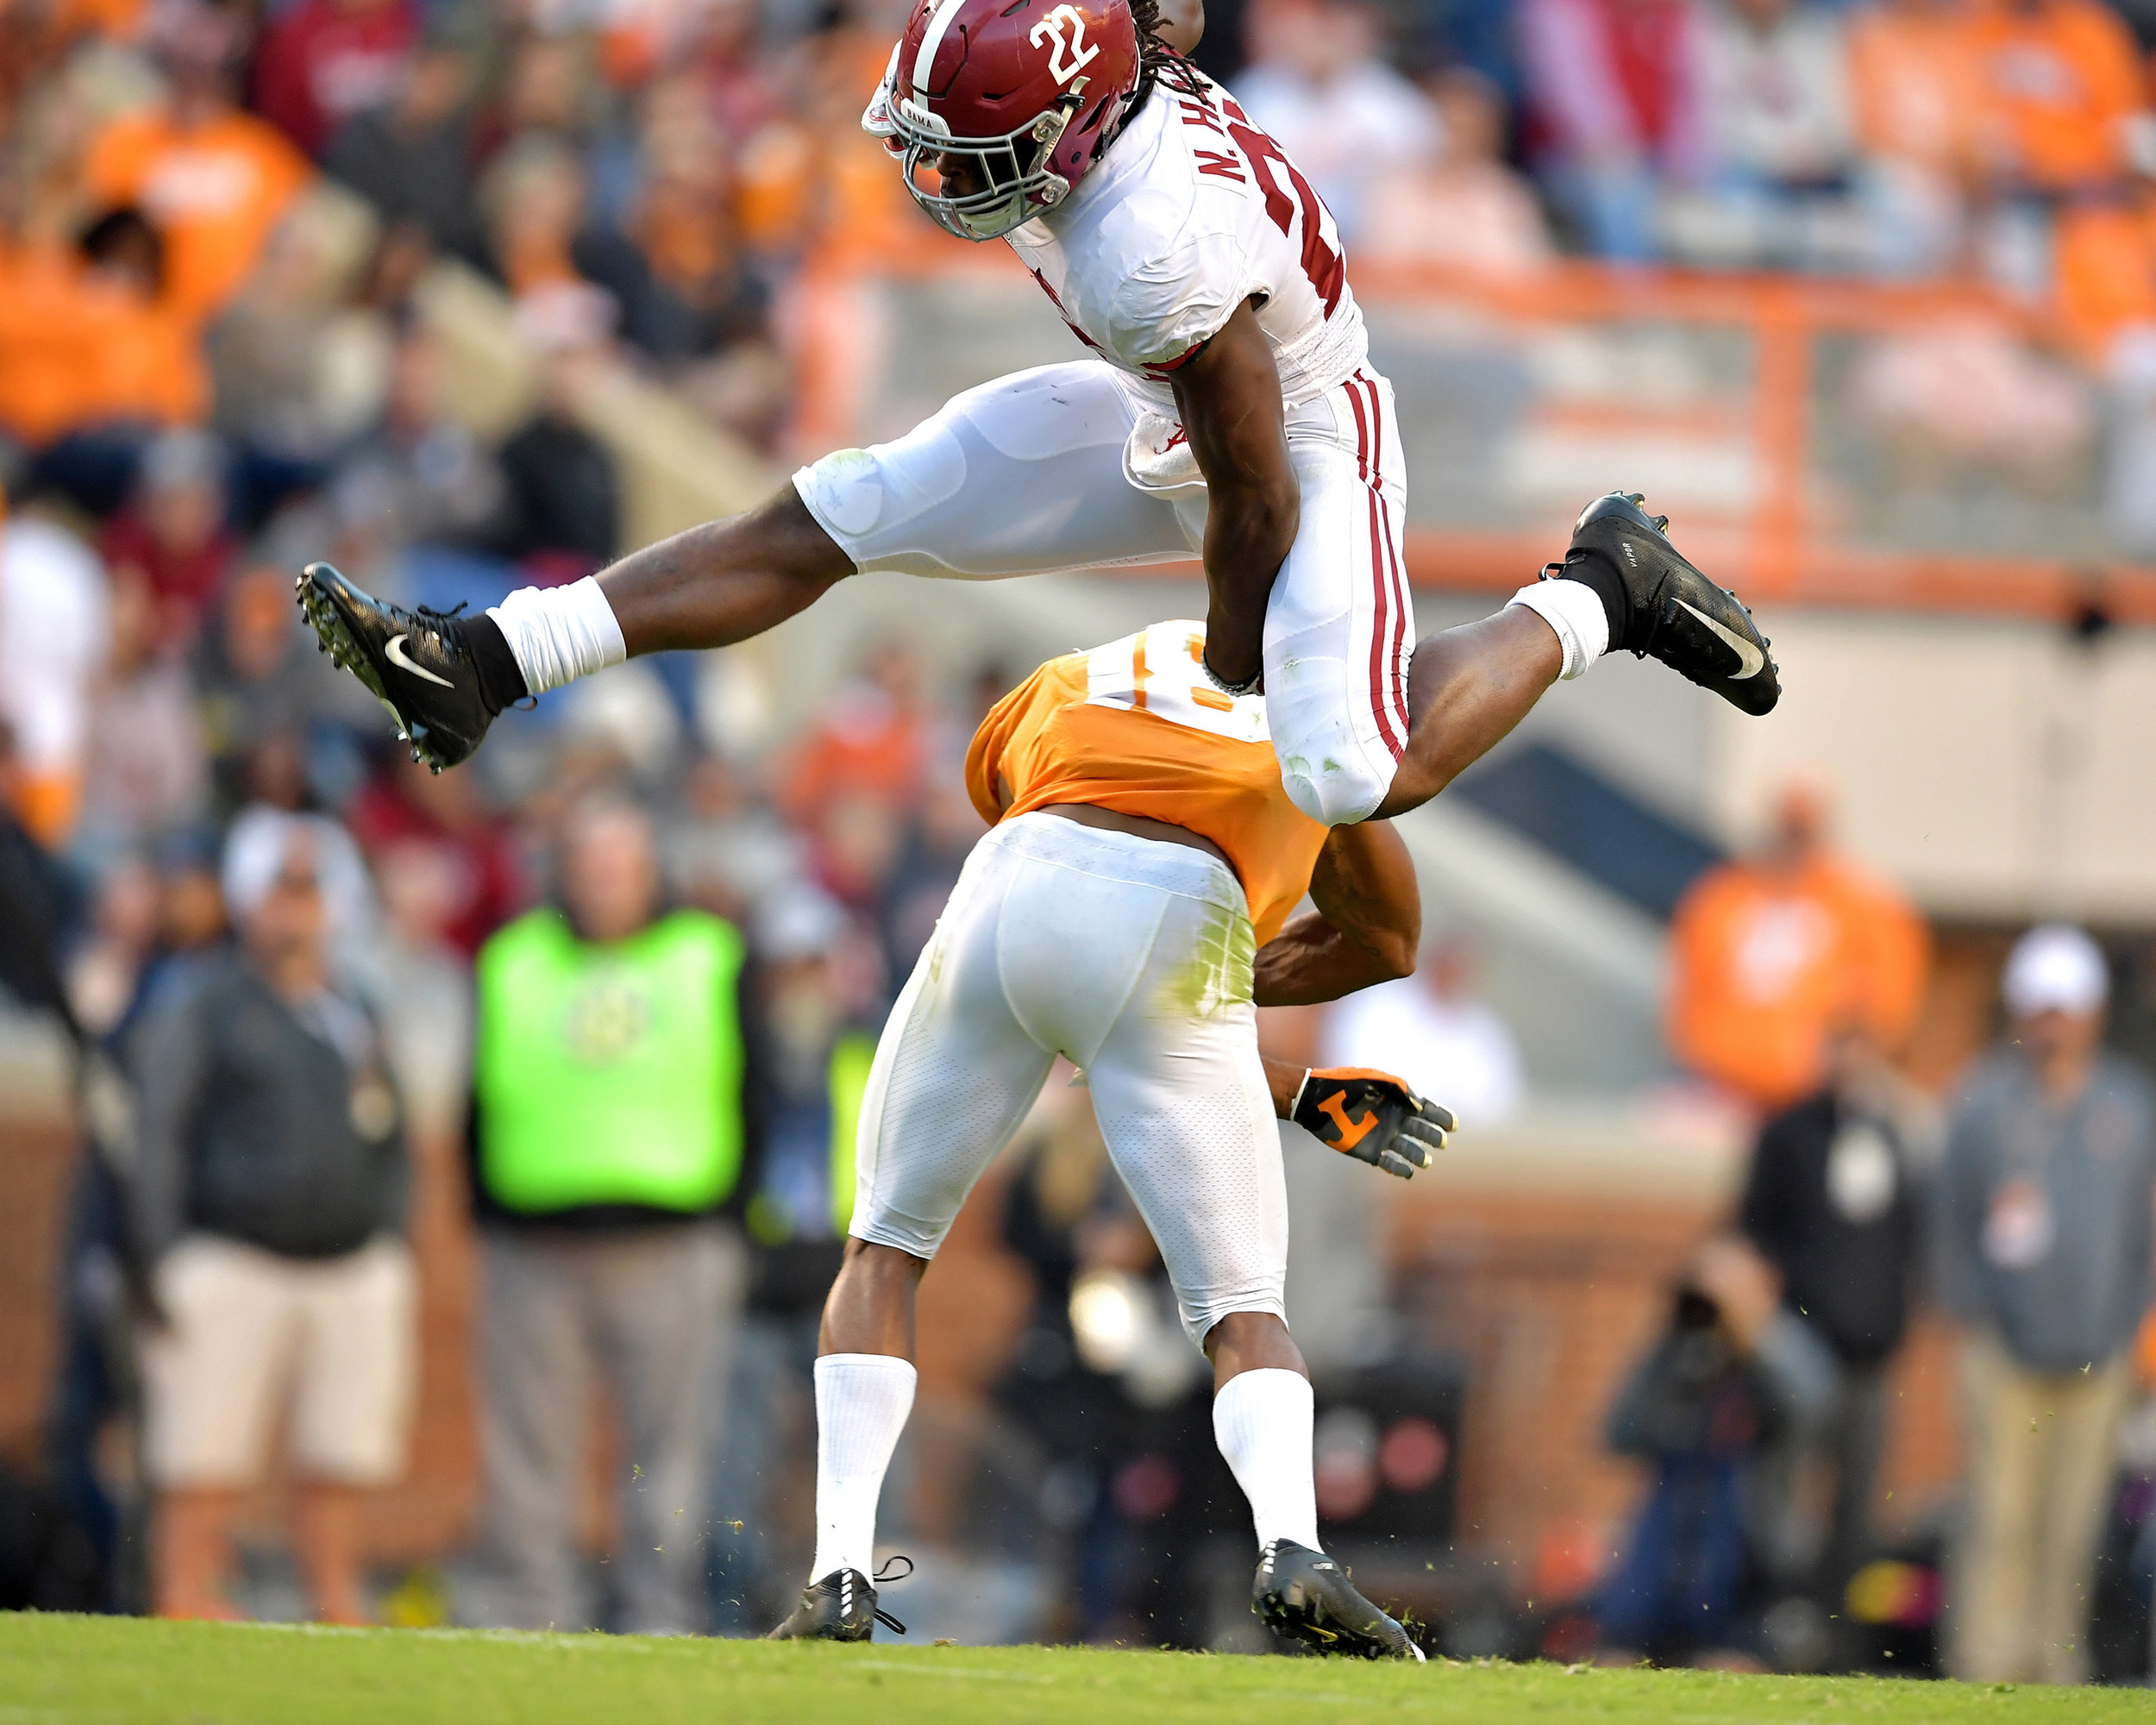 Alabama Crimson Tide running back Najee Harris (22) hurdles a Tennessee player in the third quarter of the Alabama at Tennessee NCAA football game on Saturday, Oct. 20, 2018, at Neyland Stadium in Knoxville. Tenn. Alabama wins 58-21. (Photo by Lee Walls)